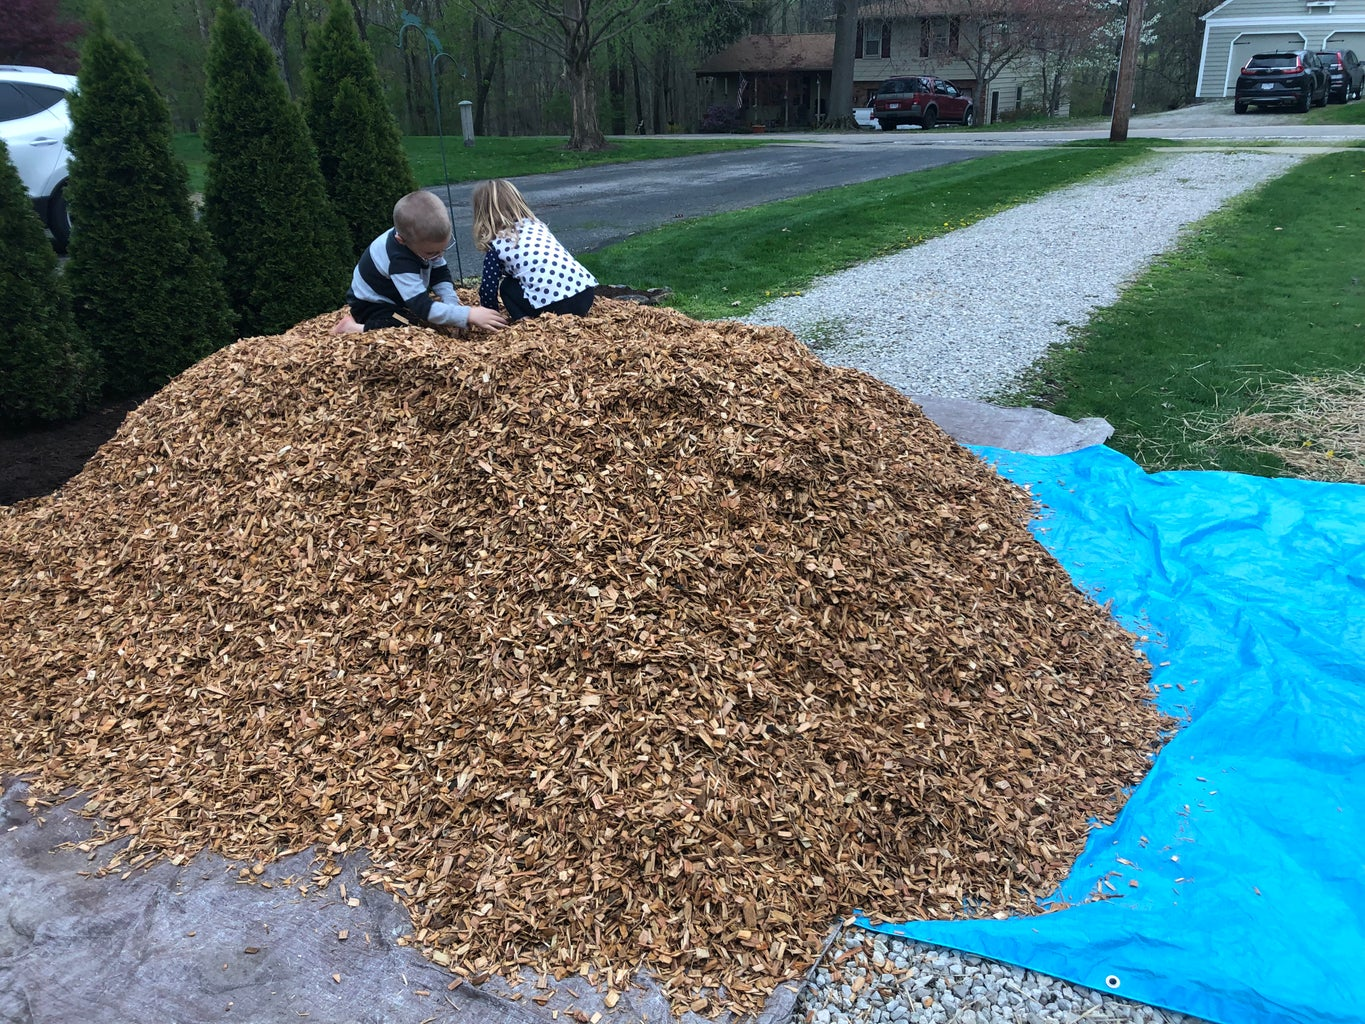 Mulch to Keep the Poison Ivy Down